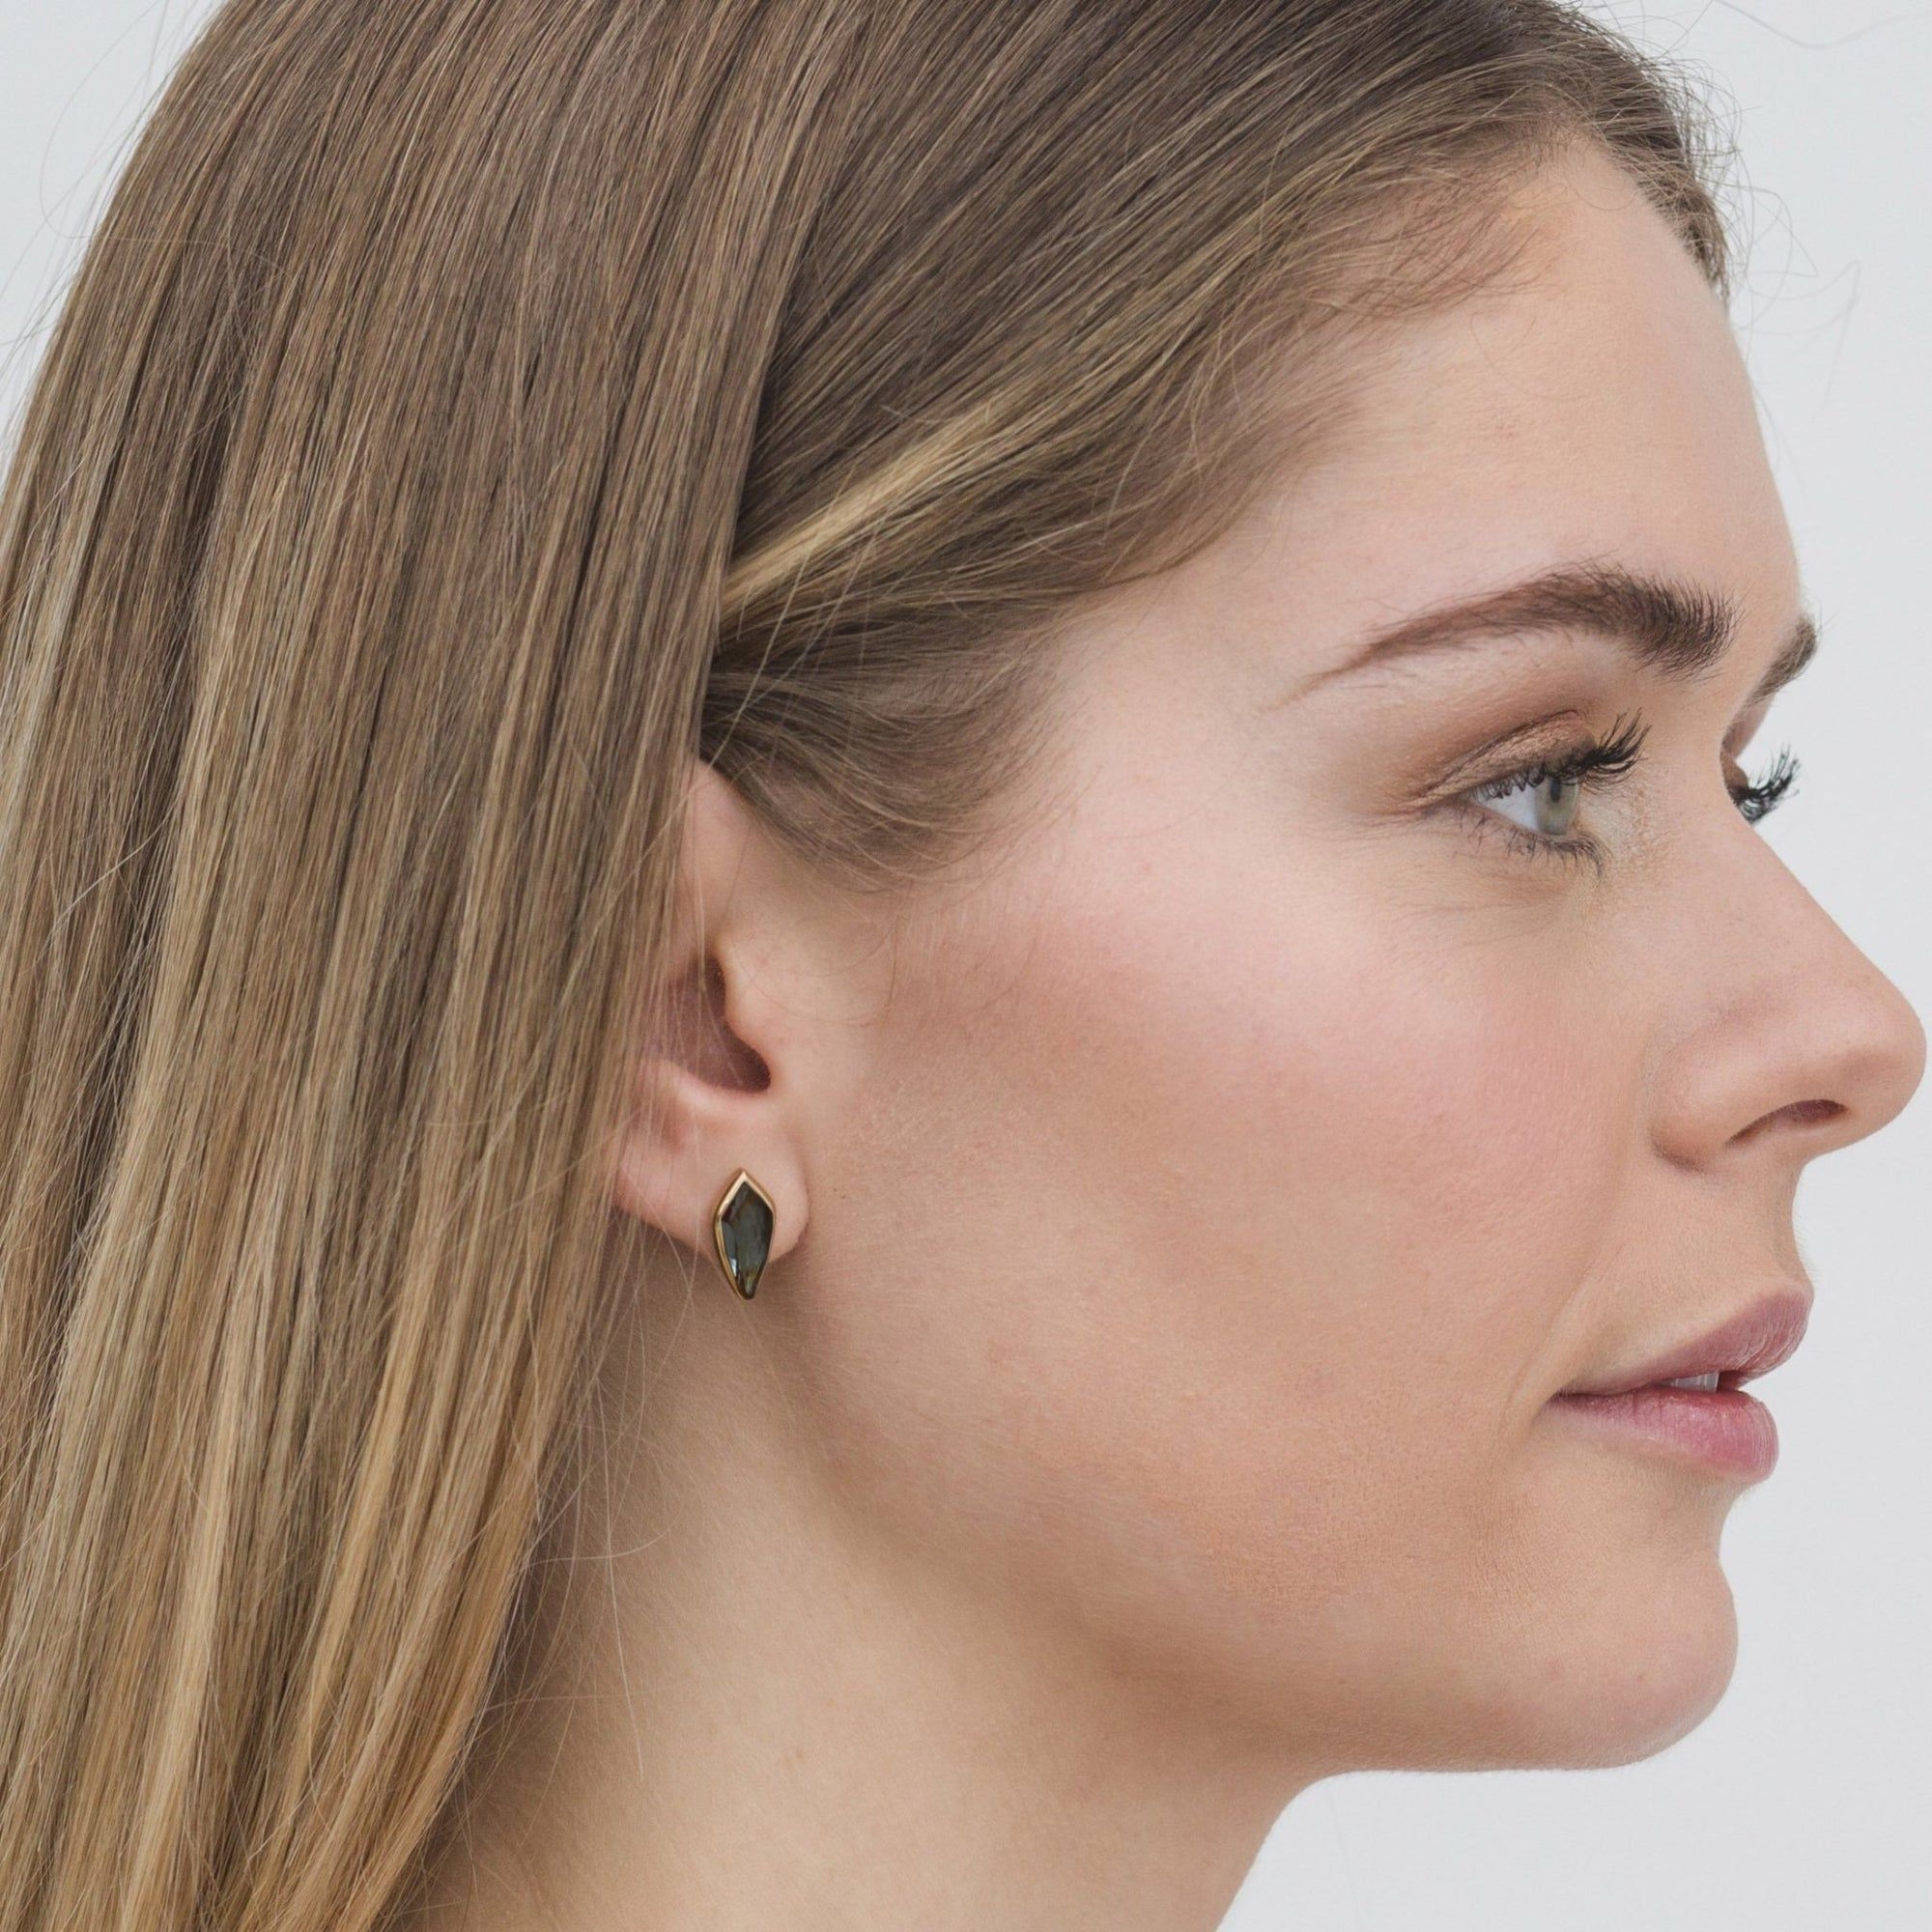 MIDI BRAVE STUD EARRINGS - LABRADORITE & GOLD - SO PRETTY CARA COTTER